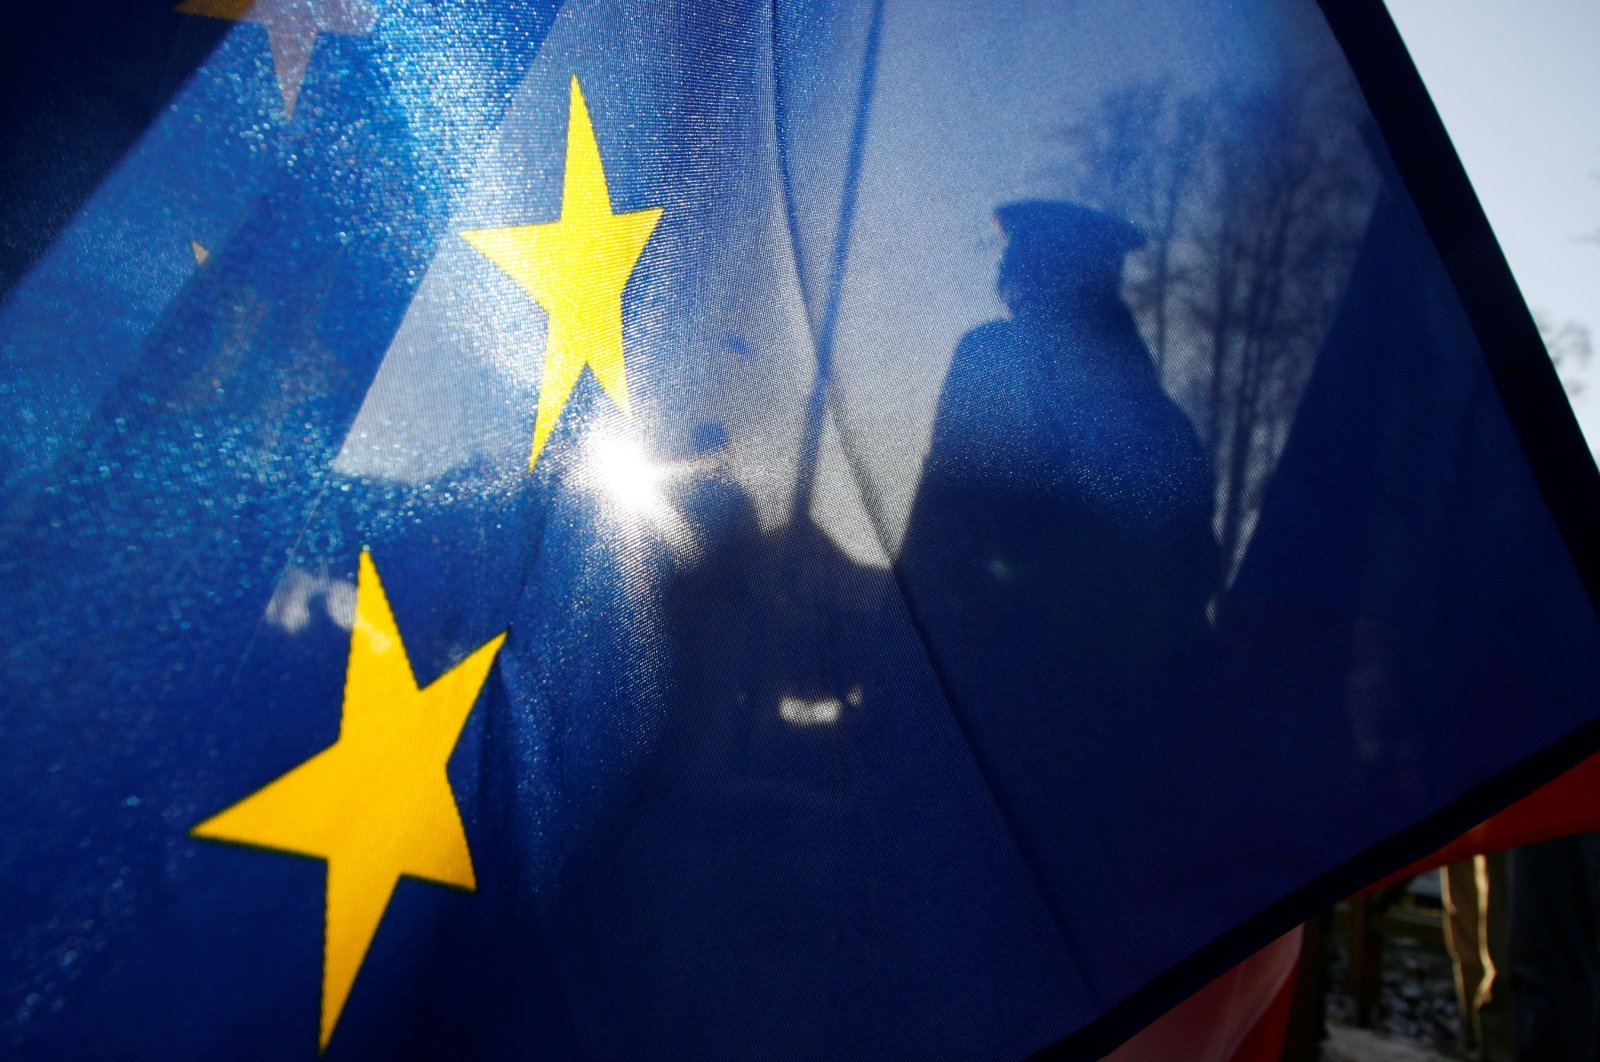 A Polish border guard stands beside a European Union flag during a ceremony at the Czech-Polish border checkpoint in Hradek nad Nisou, Czech Republic, Dec. 21, 2007. (Reuters Photo)